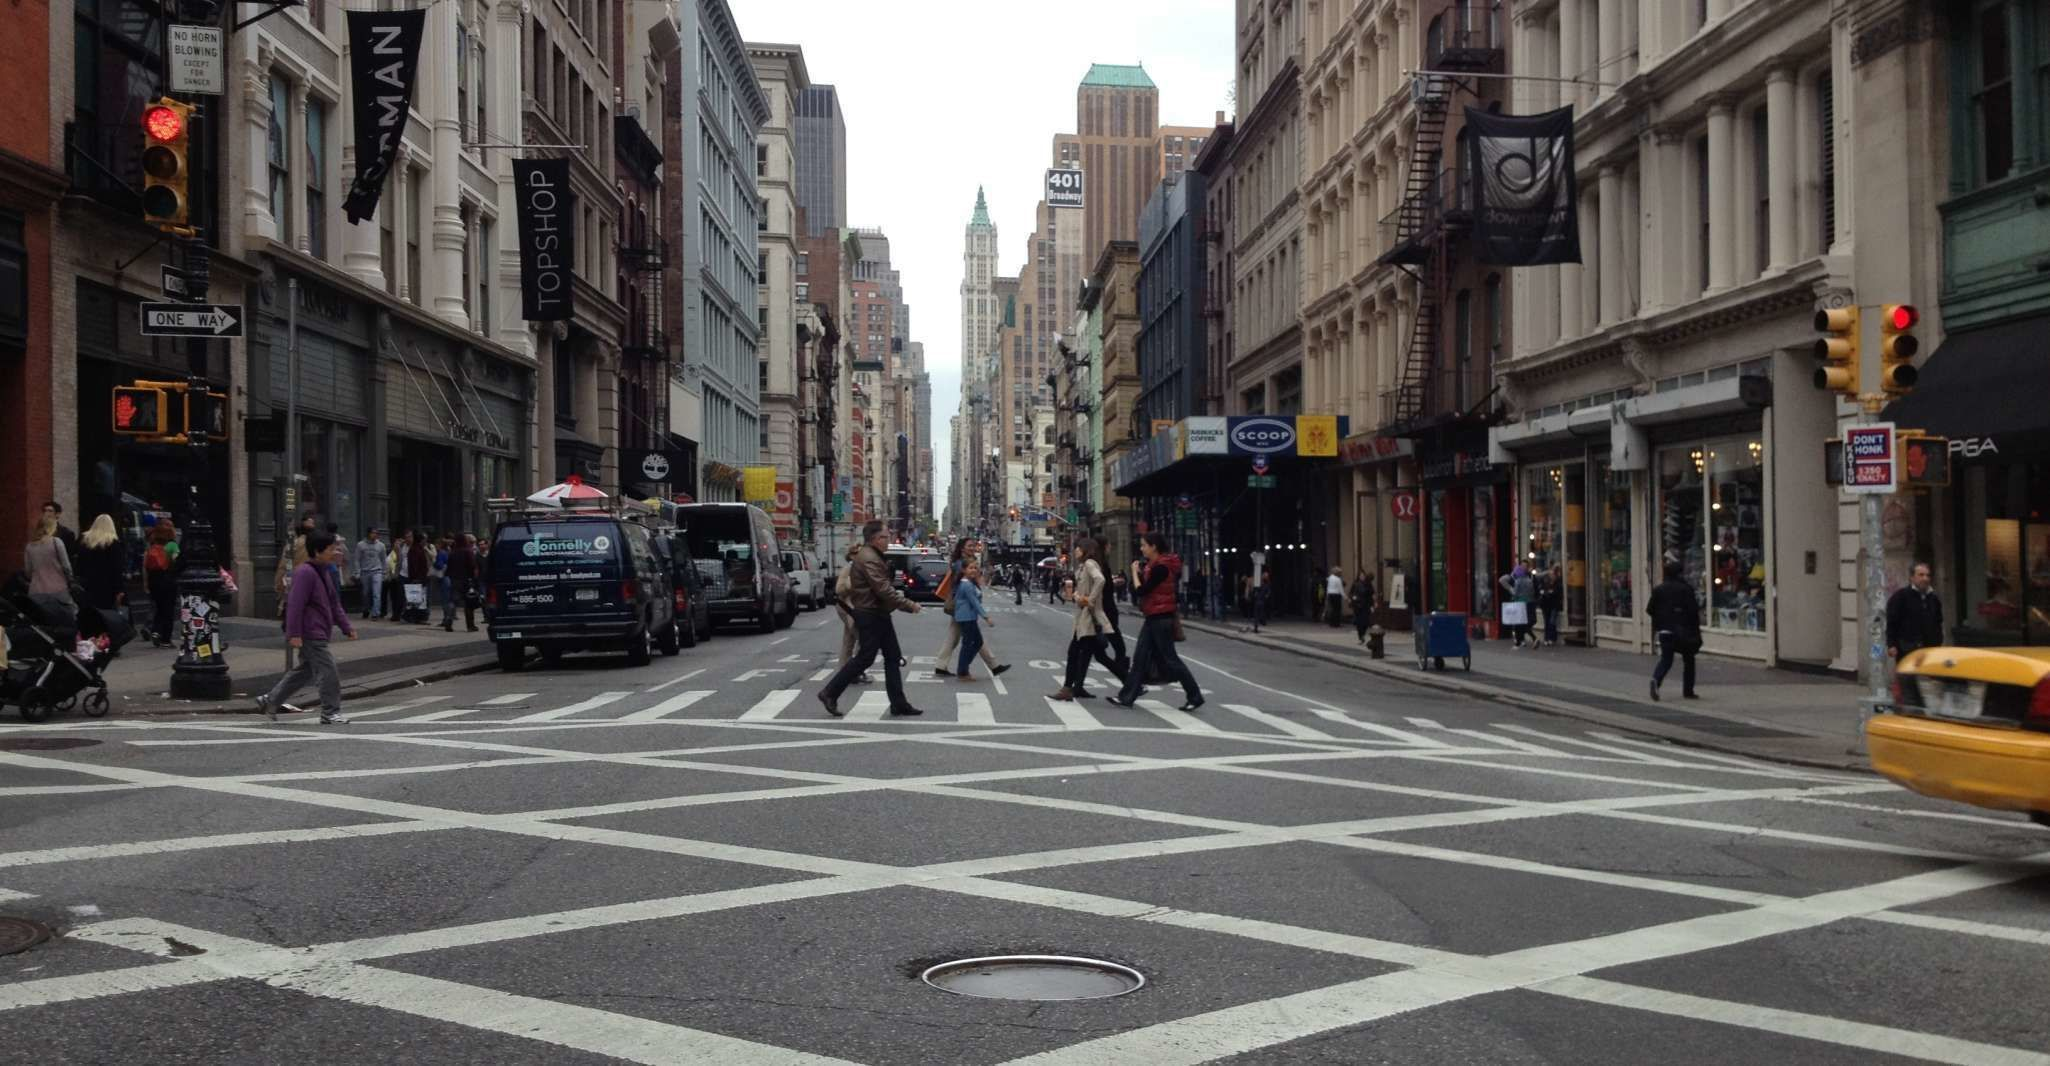 New York City Welcome: Private Tour with a Local Guide